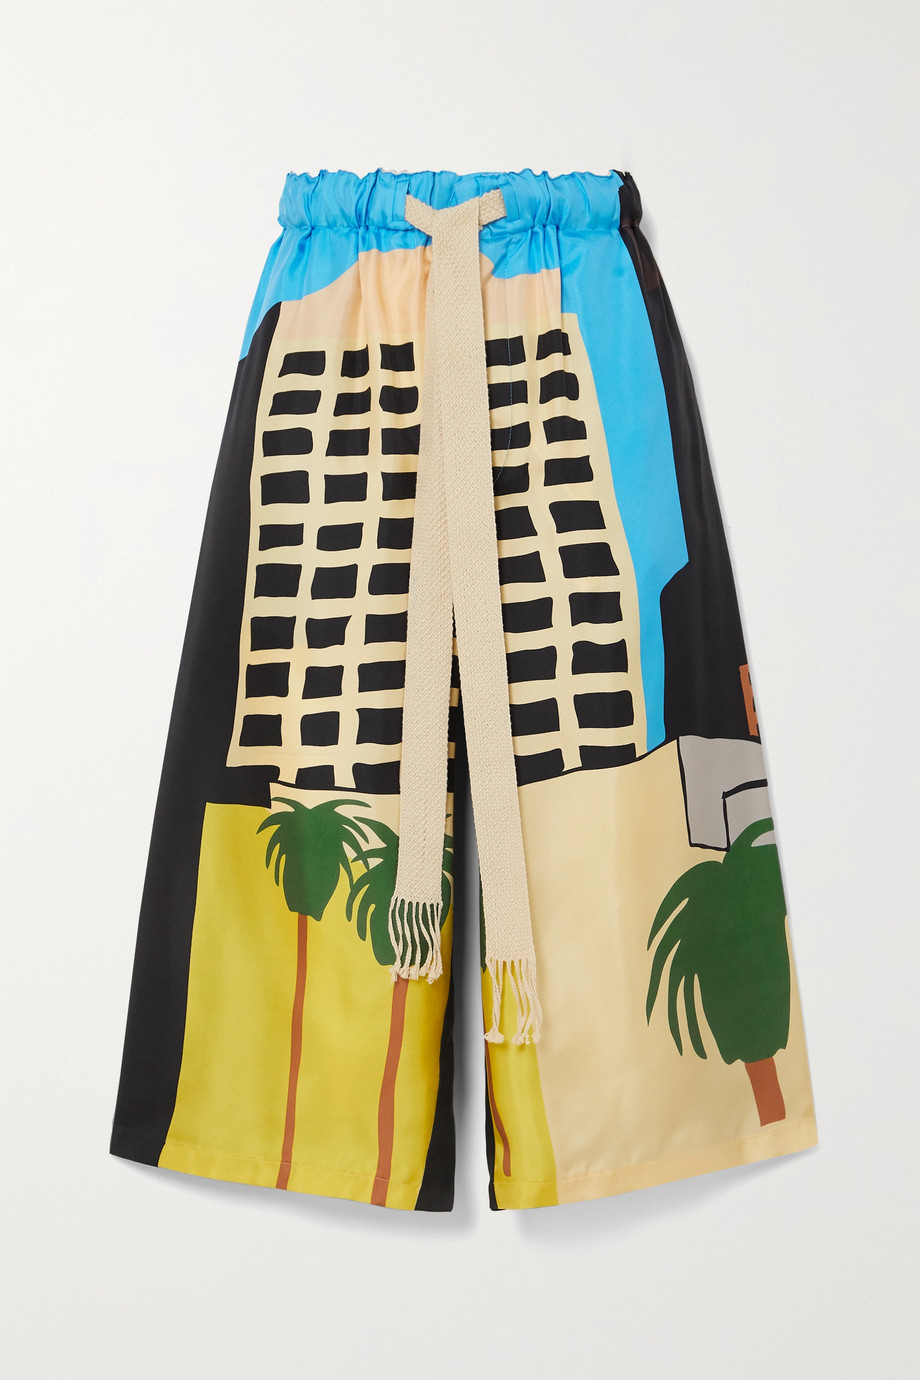 LOEWE + Ken Price LA Series printed silk-twill shorts